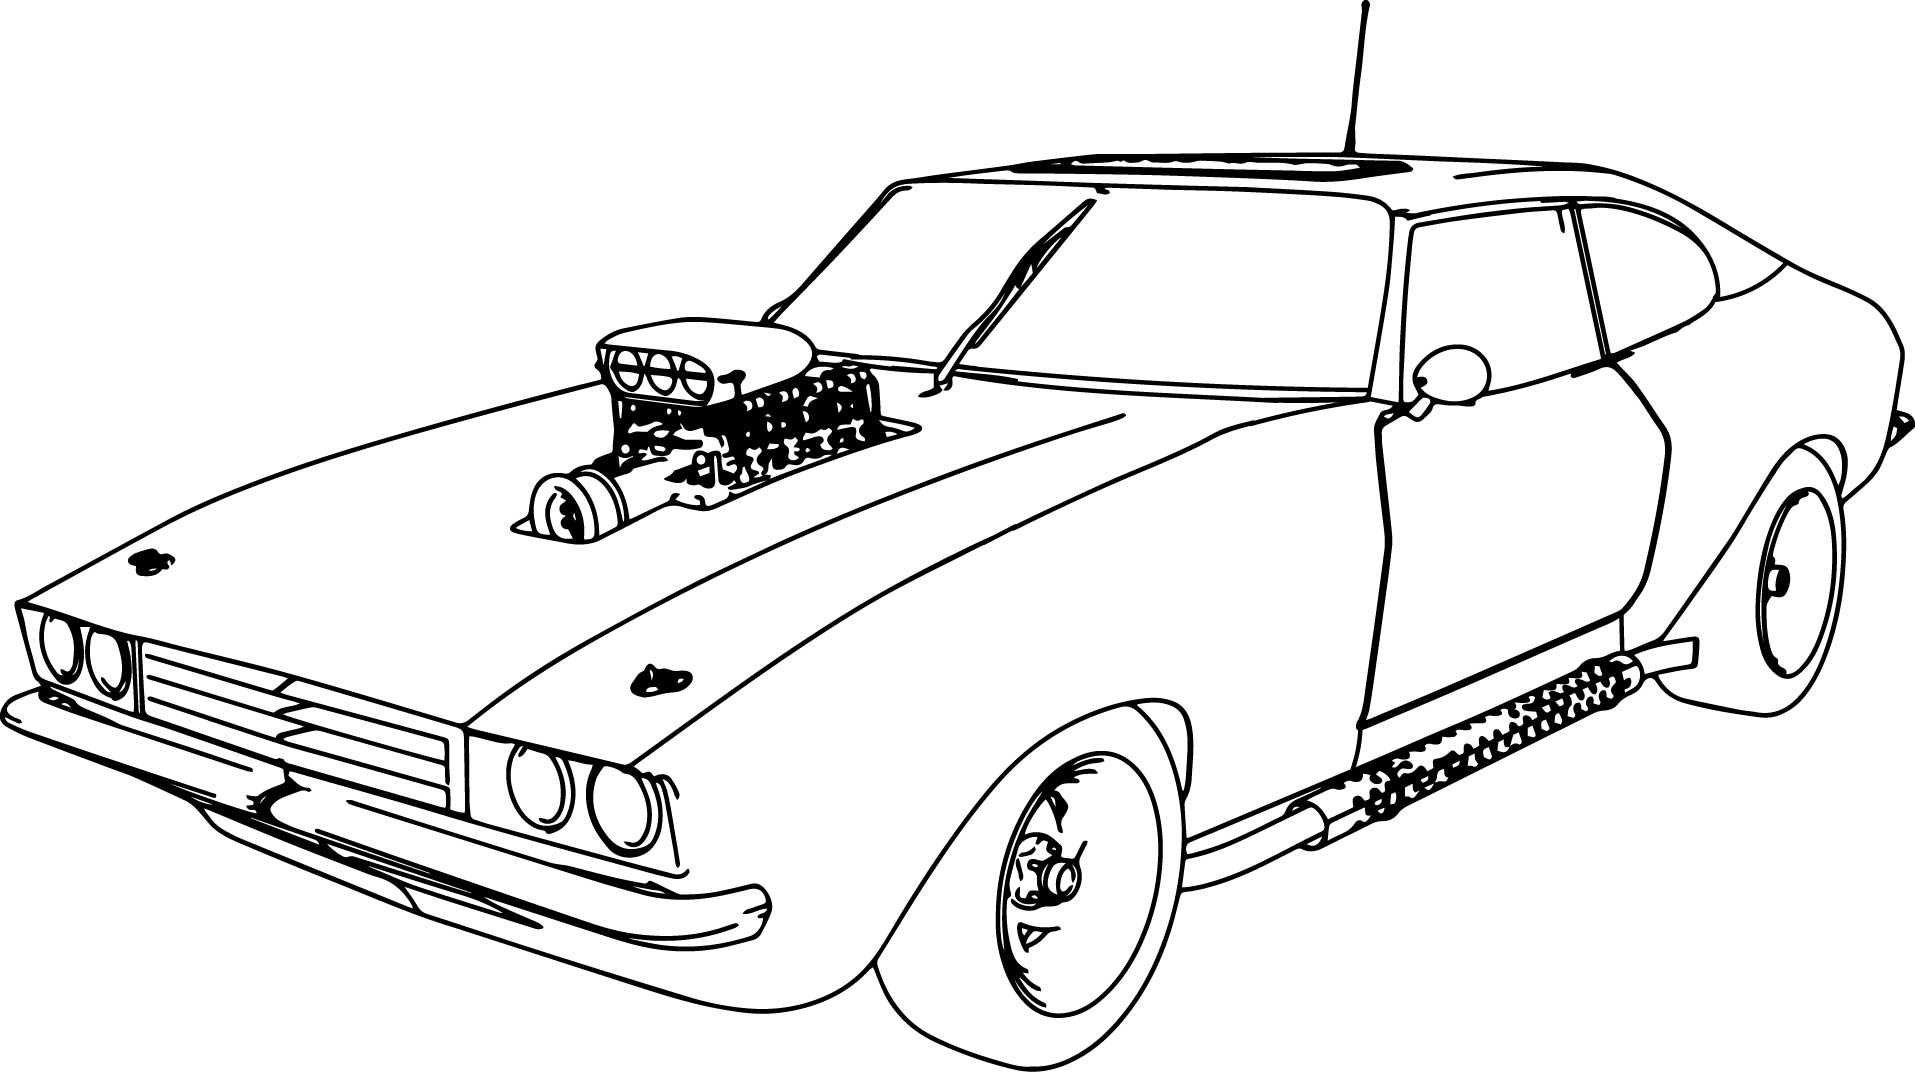 Adult Coloring Pages Trucks Enjoyable Design Coloring Pages Of Car Rocks Cars And Trucks Cartoon